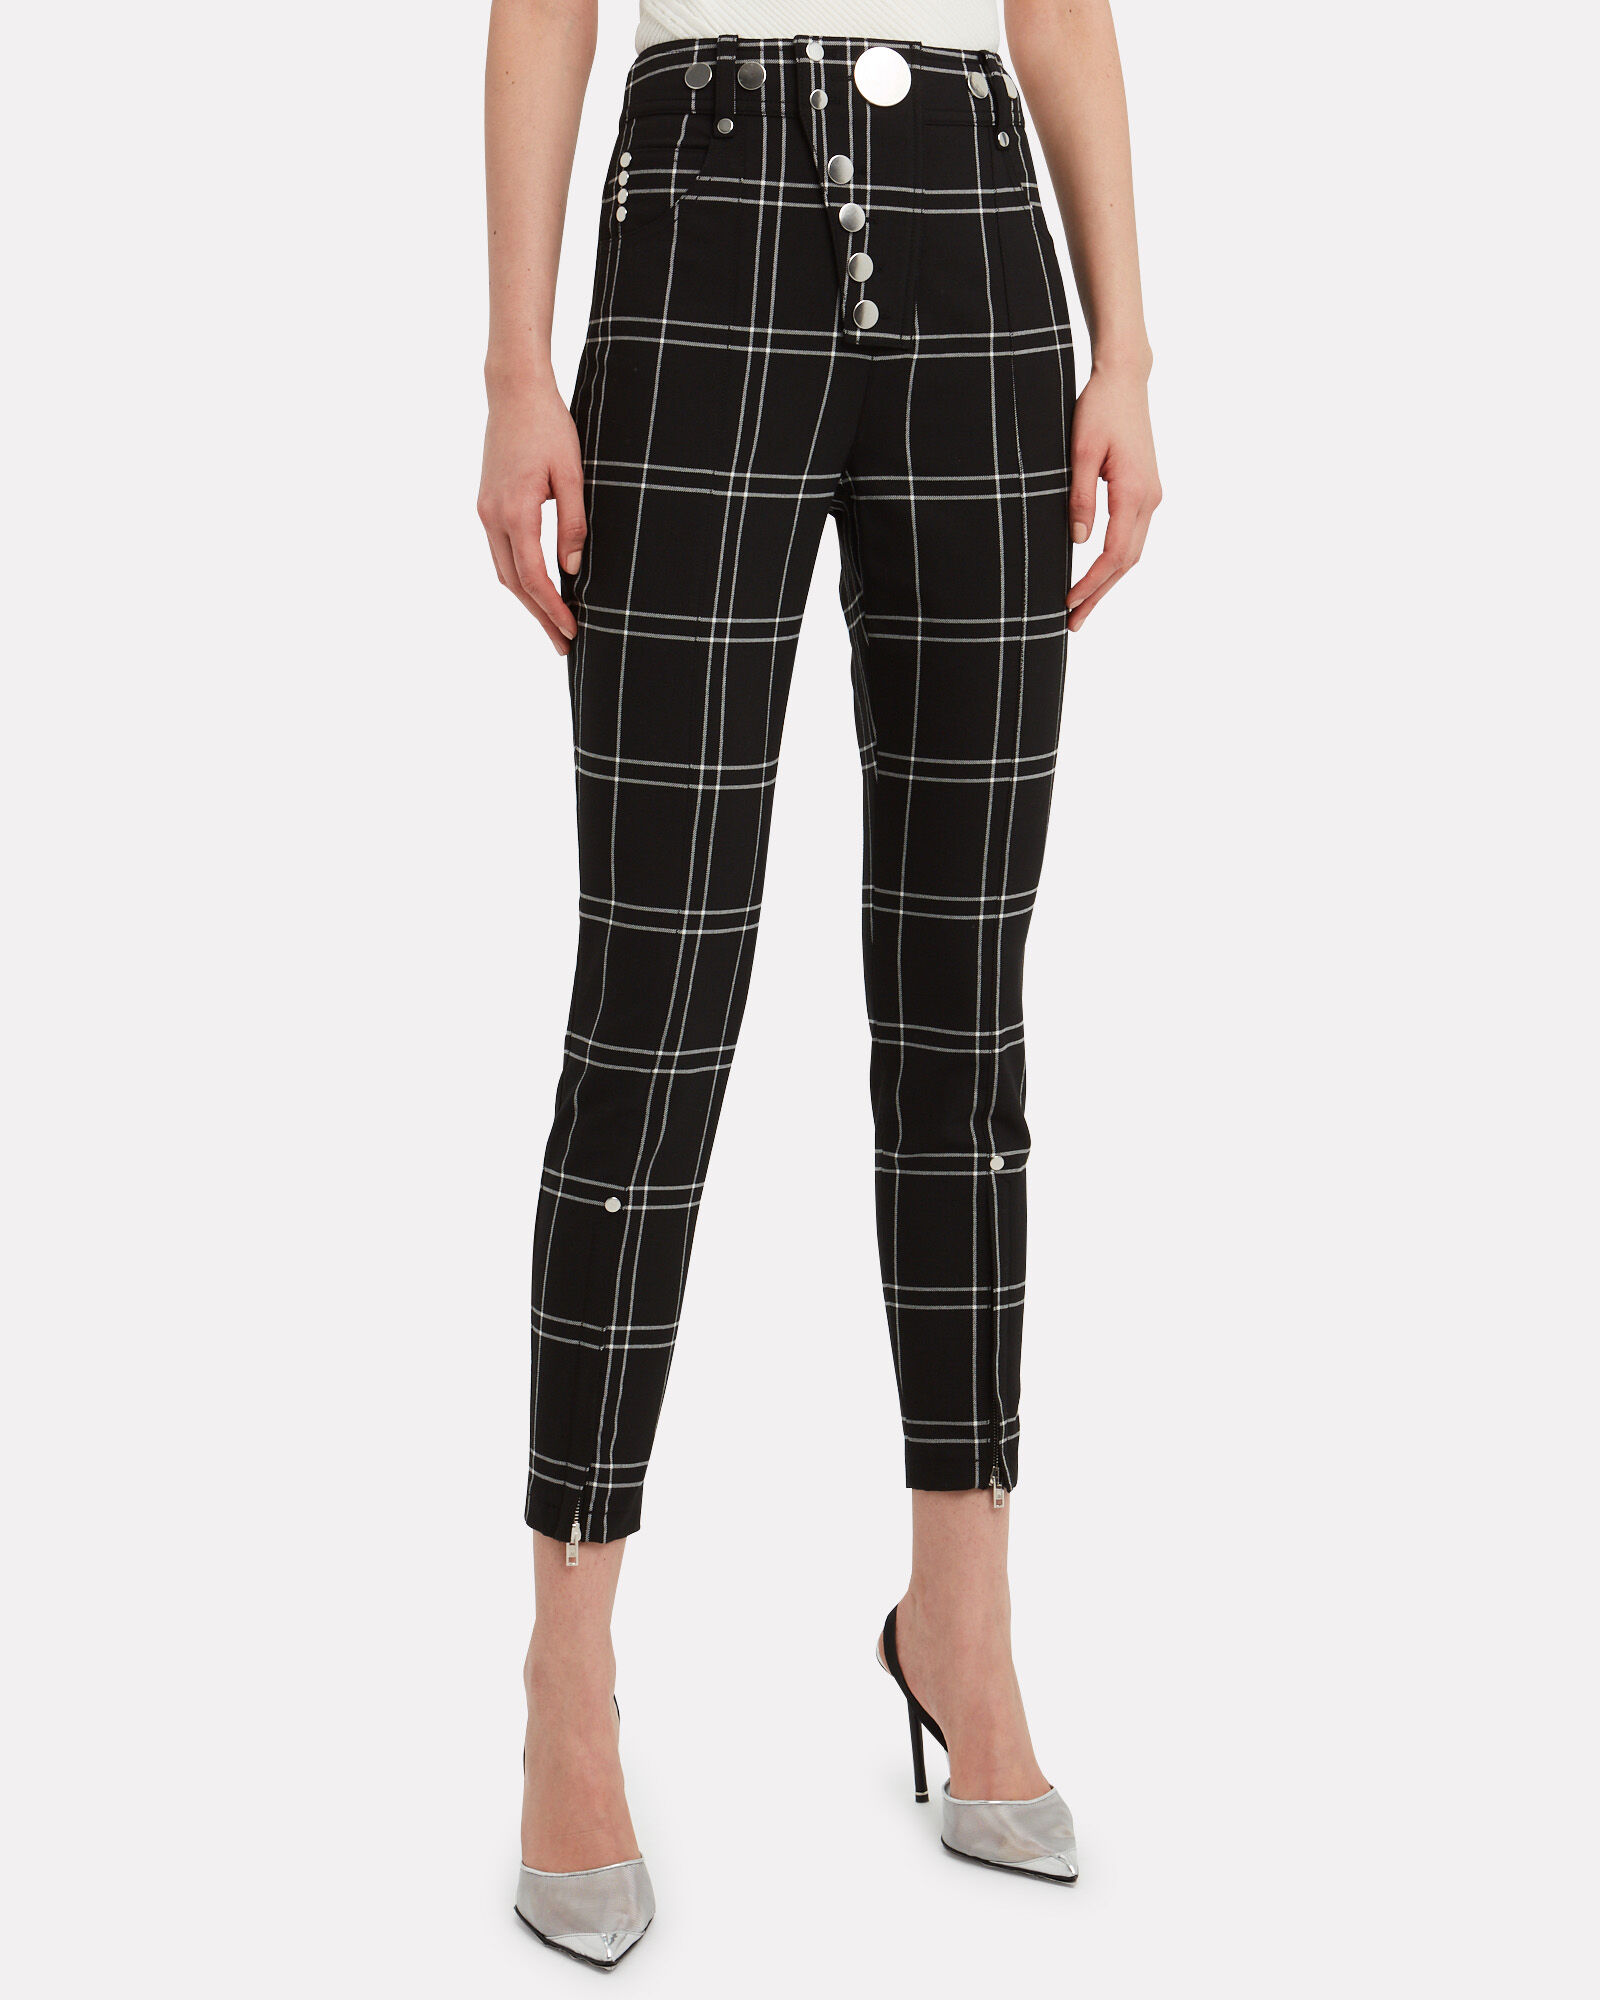 Snap Button Trousers, BLK/WHT, hi-res